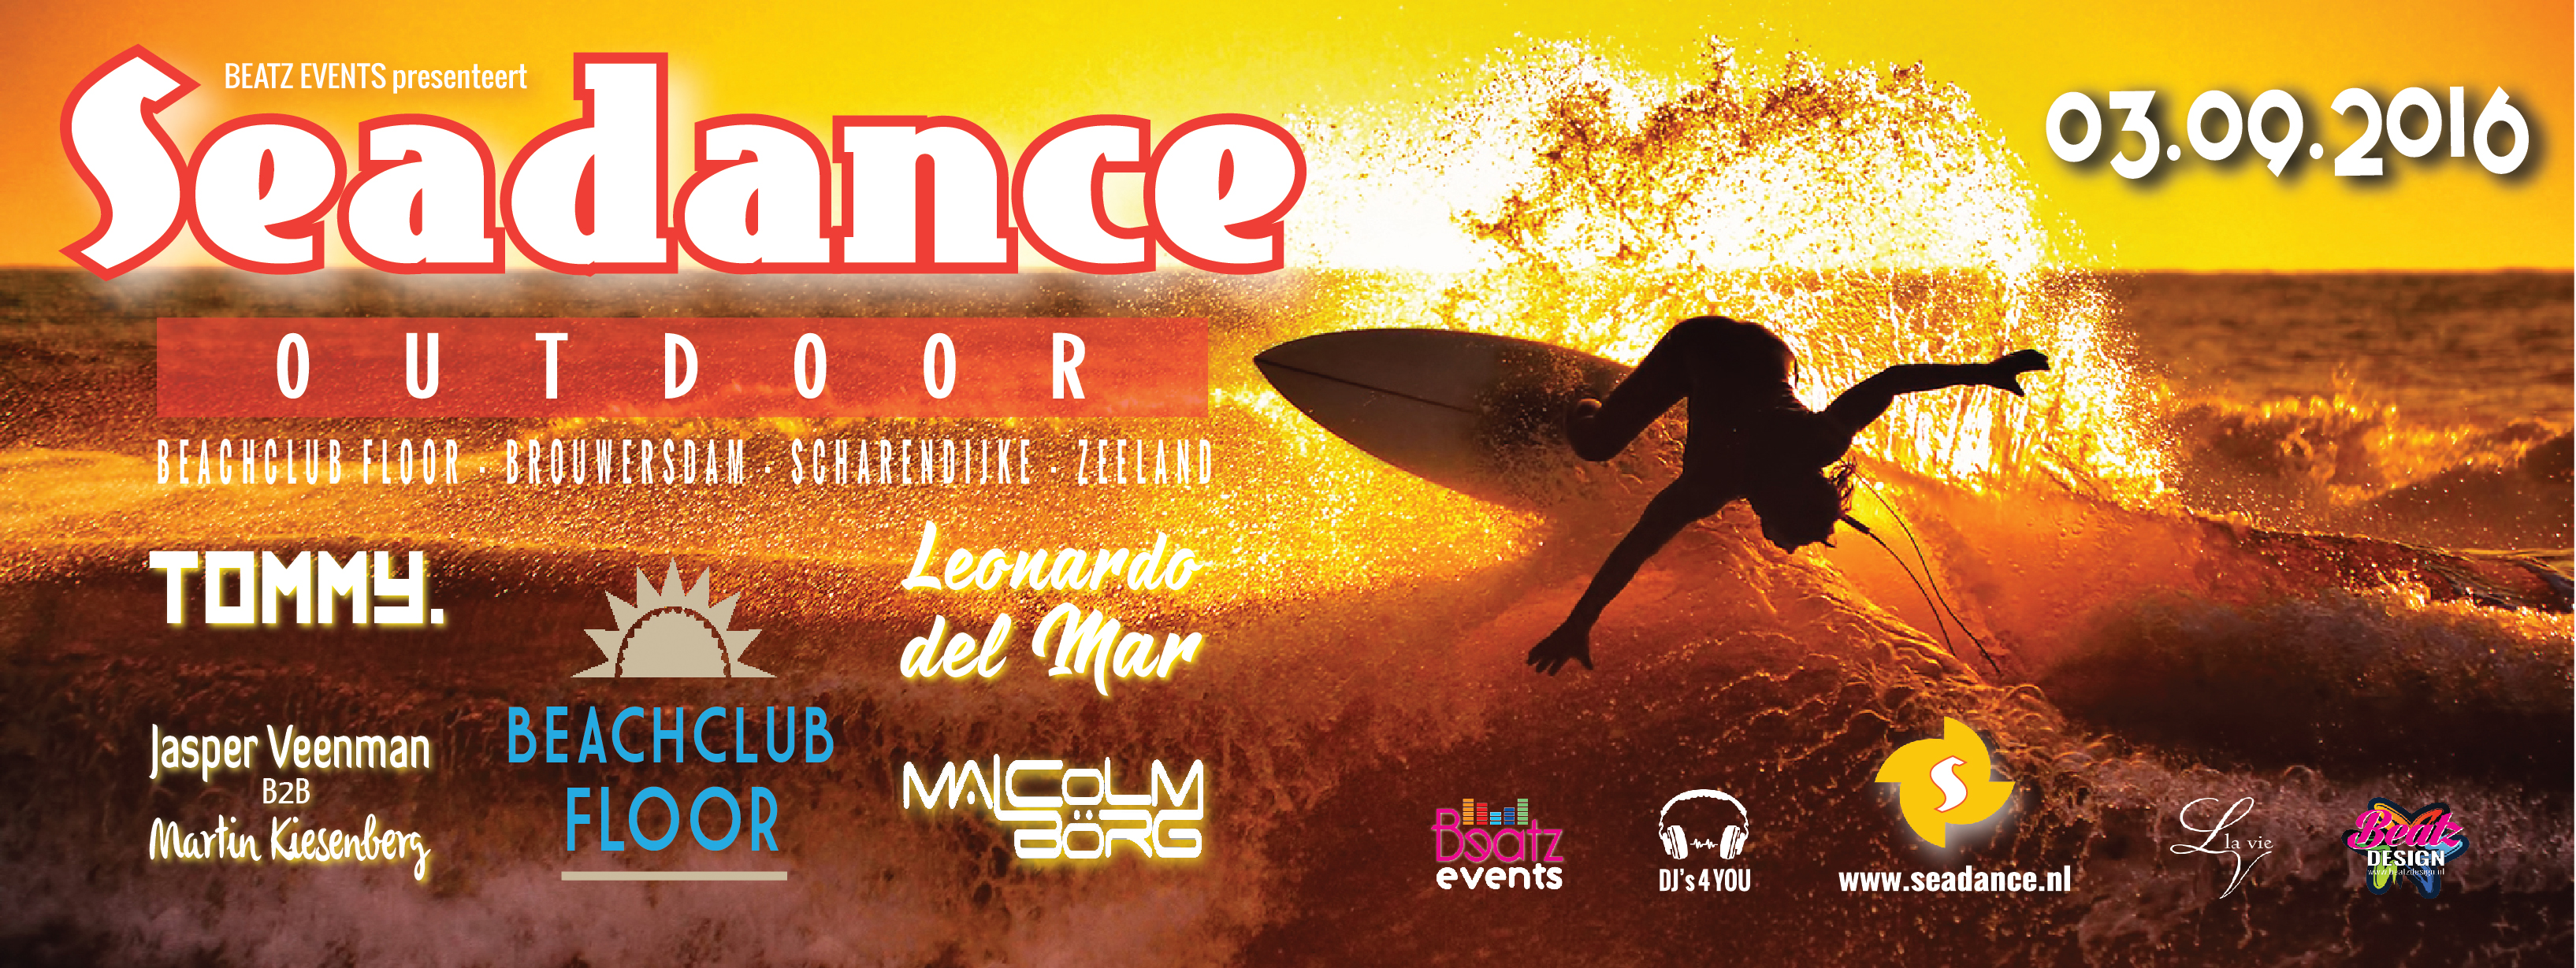 Seadance 2016 Outdoor